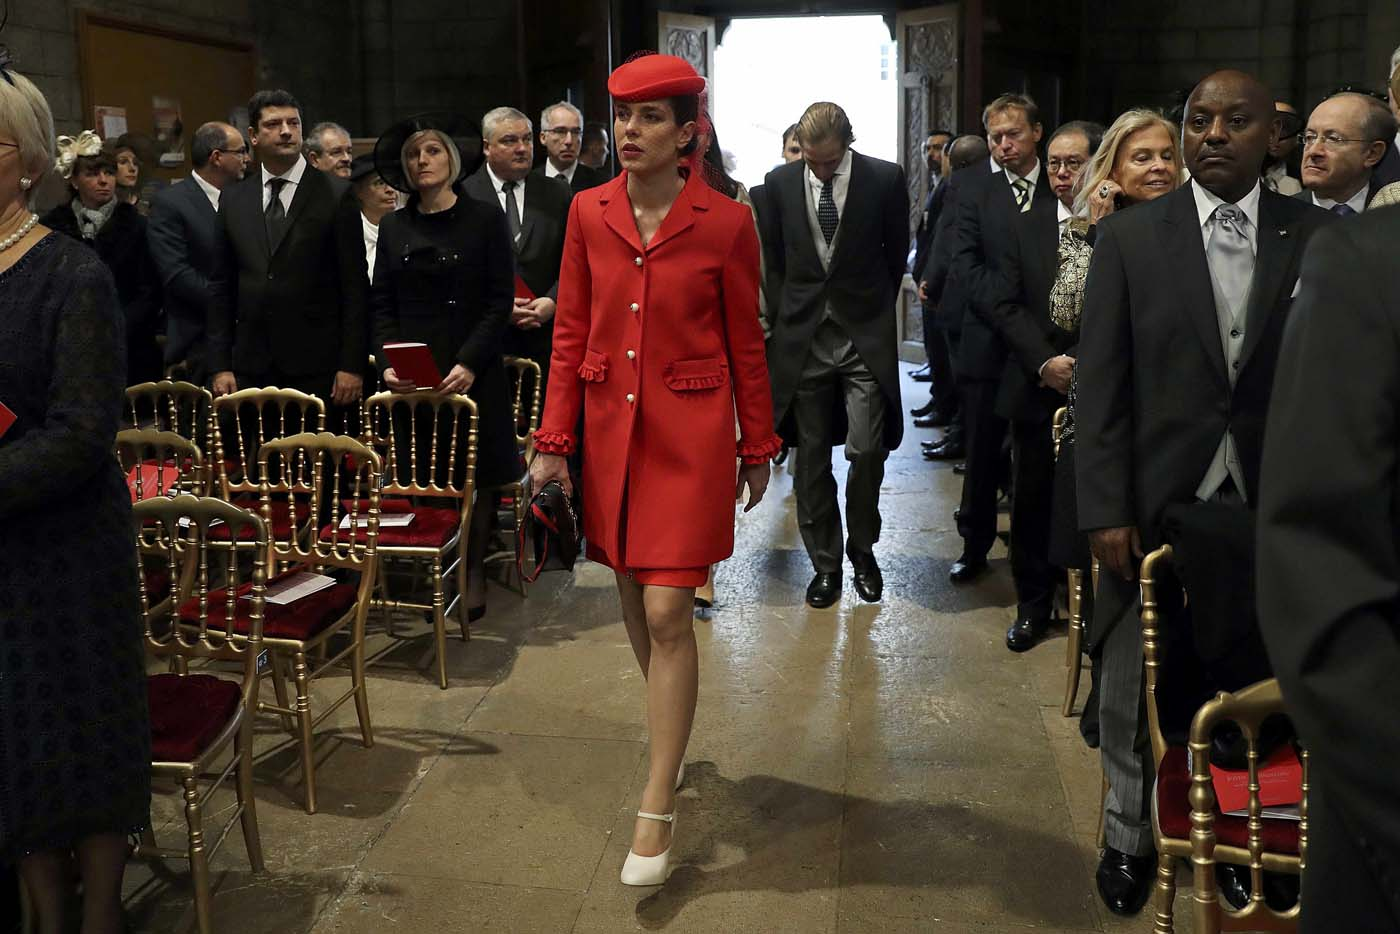 Monaco's Princess Charlotte Casiraghi arrives to attend a mass at the Saint Nicholas Cathedral during the celebrations marking Monaco's National Day, on November 19, 2016 in Monaco. REUTERS/Valery Hache/Pool